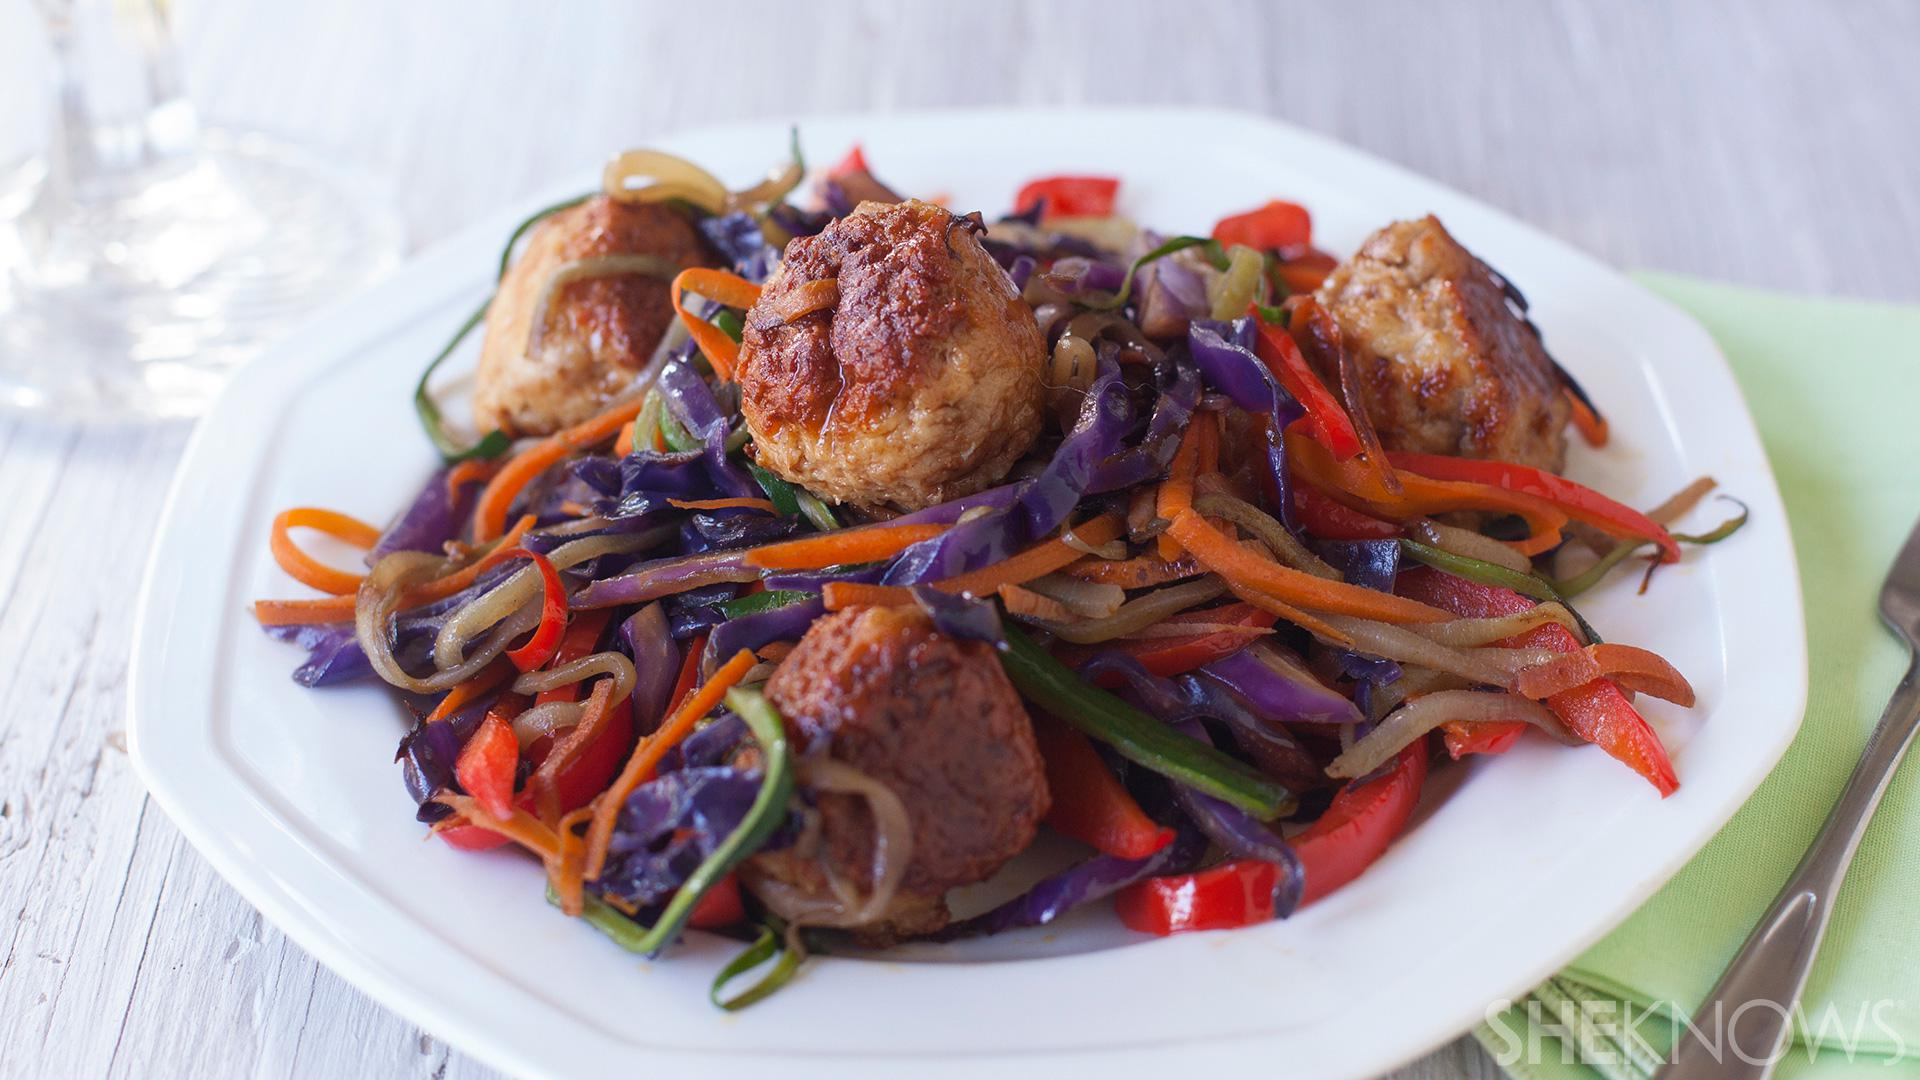 chinese-turkey-meatballs-with-vegetables-stir-fry-recipe